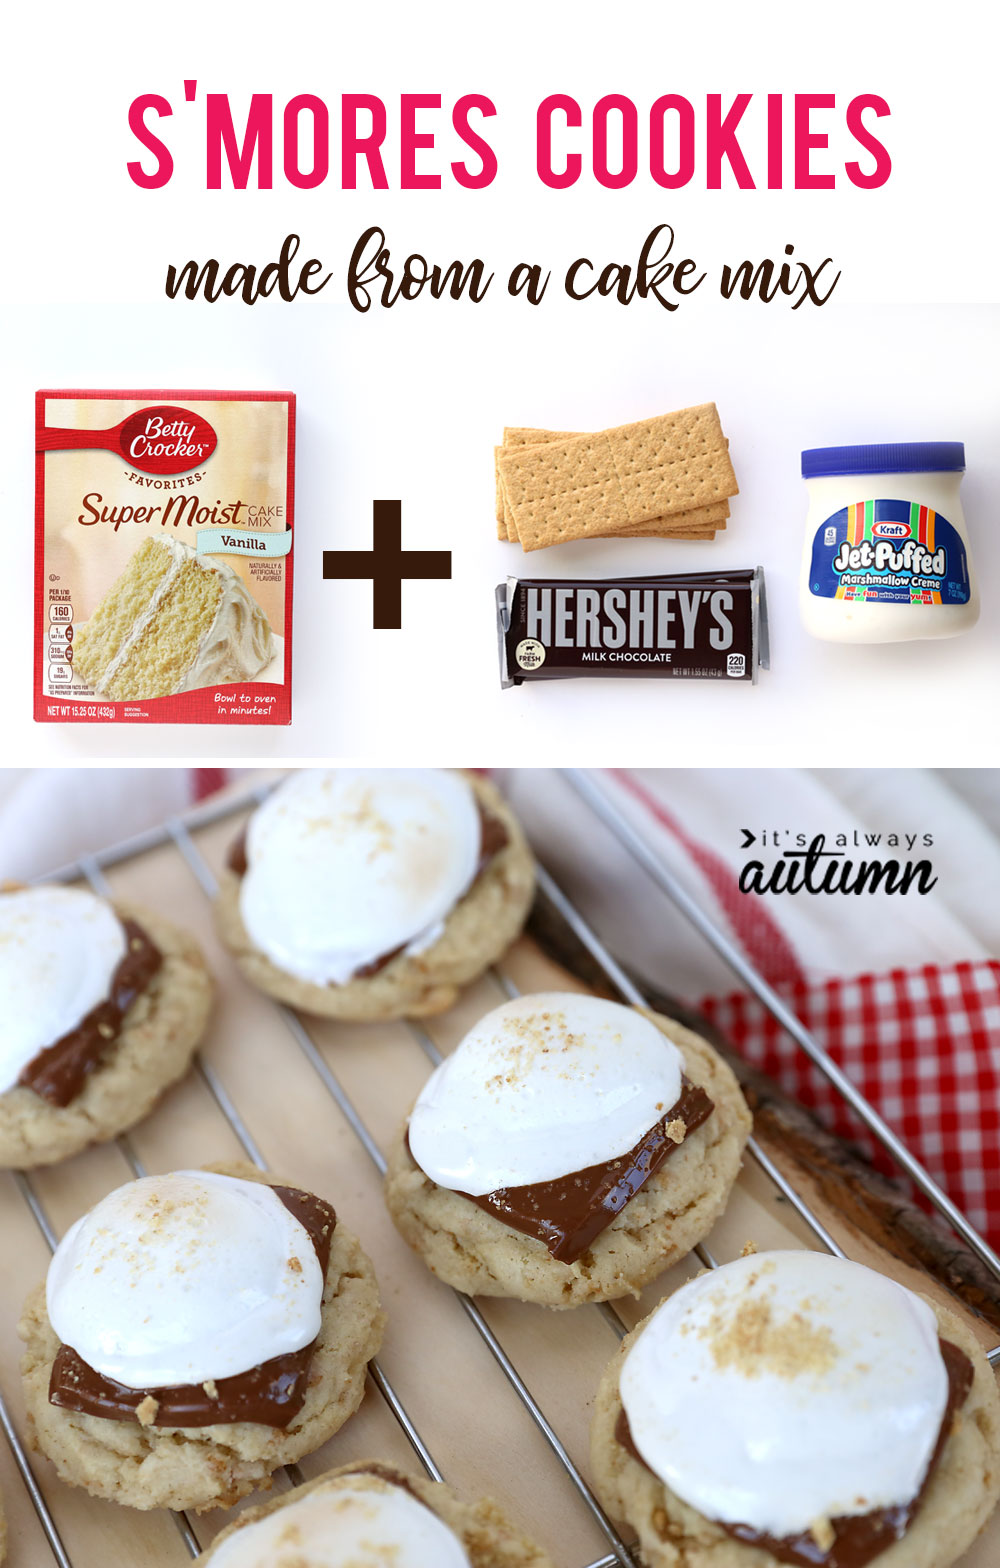 These s'mores cookies are amazing! And they're super fast to make because they start with a cake mix.